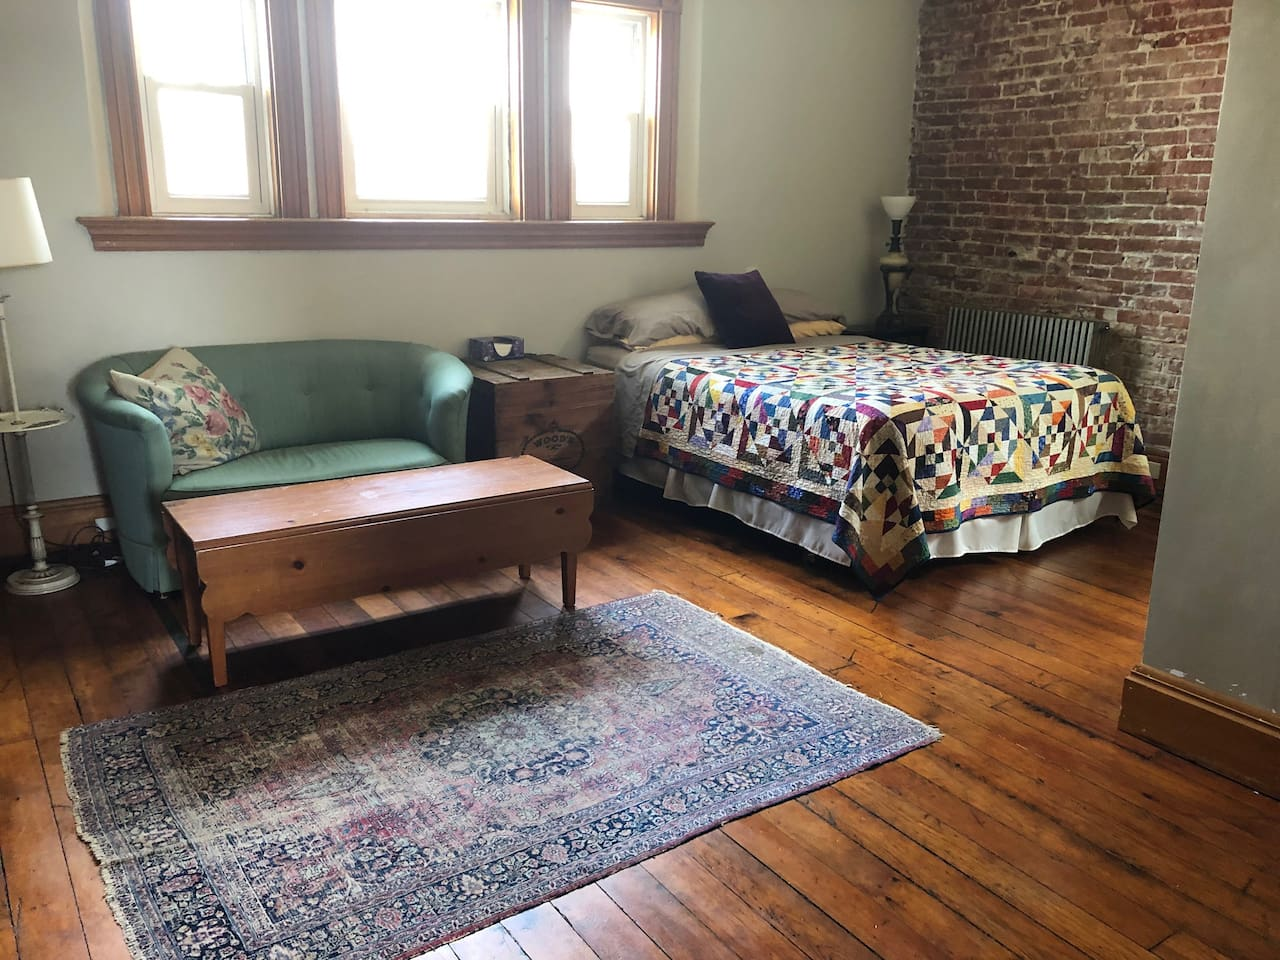 Airy, bright space that feels far, far away from it all. Full of original woodwork. Relax in the queen bed, lounge on the couch (don't mind the springs, it's old!), and plan your day exploring our vibrant neighborhood.